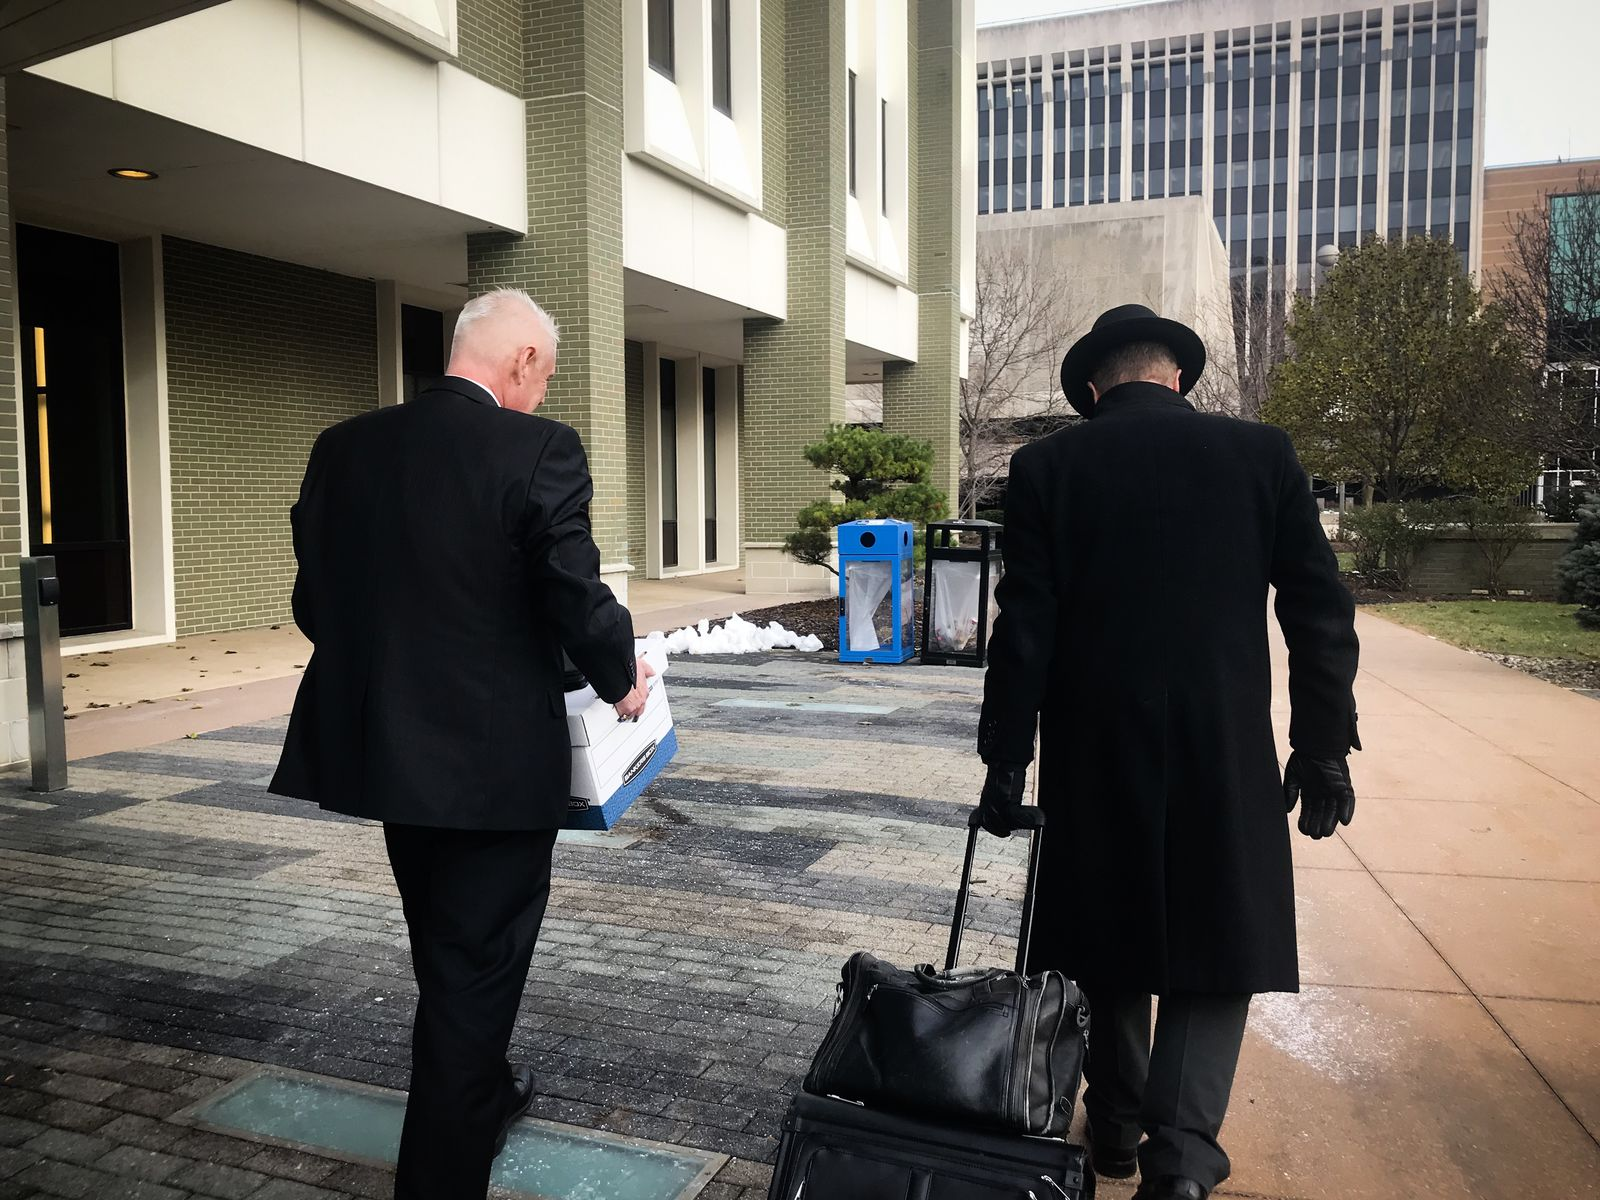 Michigan state Rep. Larry Inman, R-Williamsburg, and his attorney, Chris Cooke, leave the federal courthouse in Grand Rapids on Thursday, Dec. 5, 2019. (SBG/Mikenzie Frost)